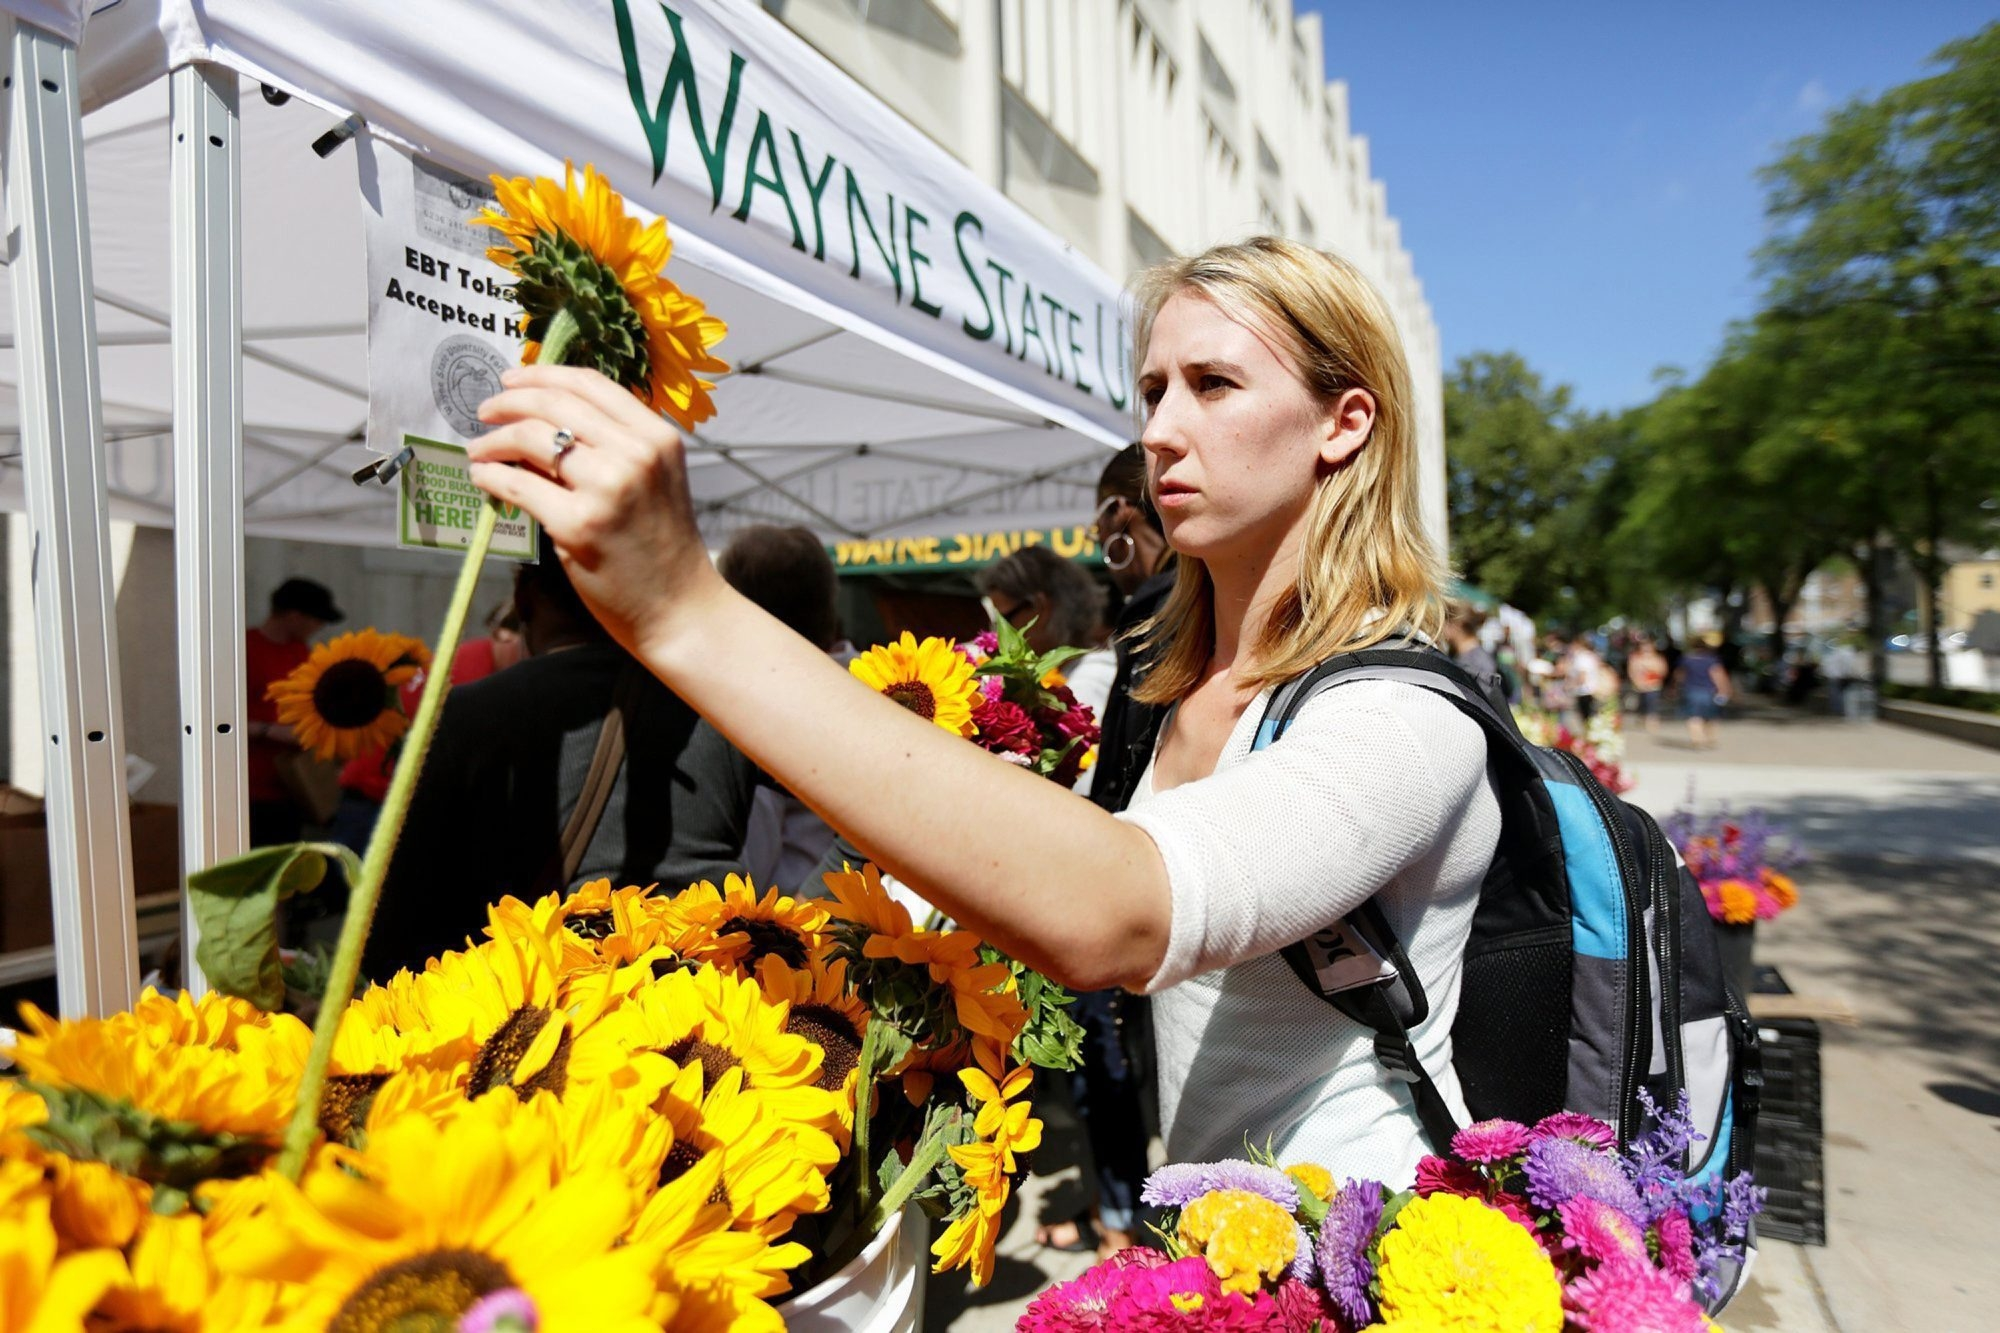 Katelyn Lietz, a senior majoring in mathematics at Wayne State University, said she might be able to get a break with the federal public service loan forgiveness program on about $40,000 in student debt if she found a job as a teacher.